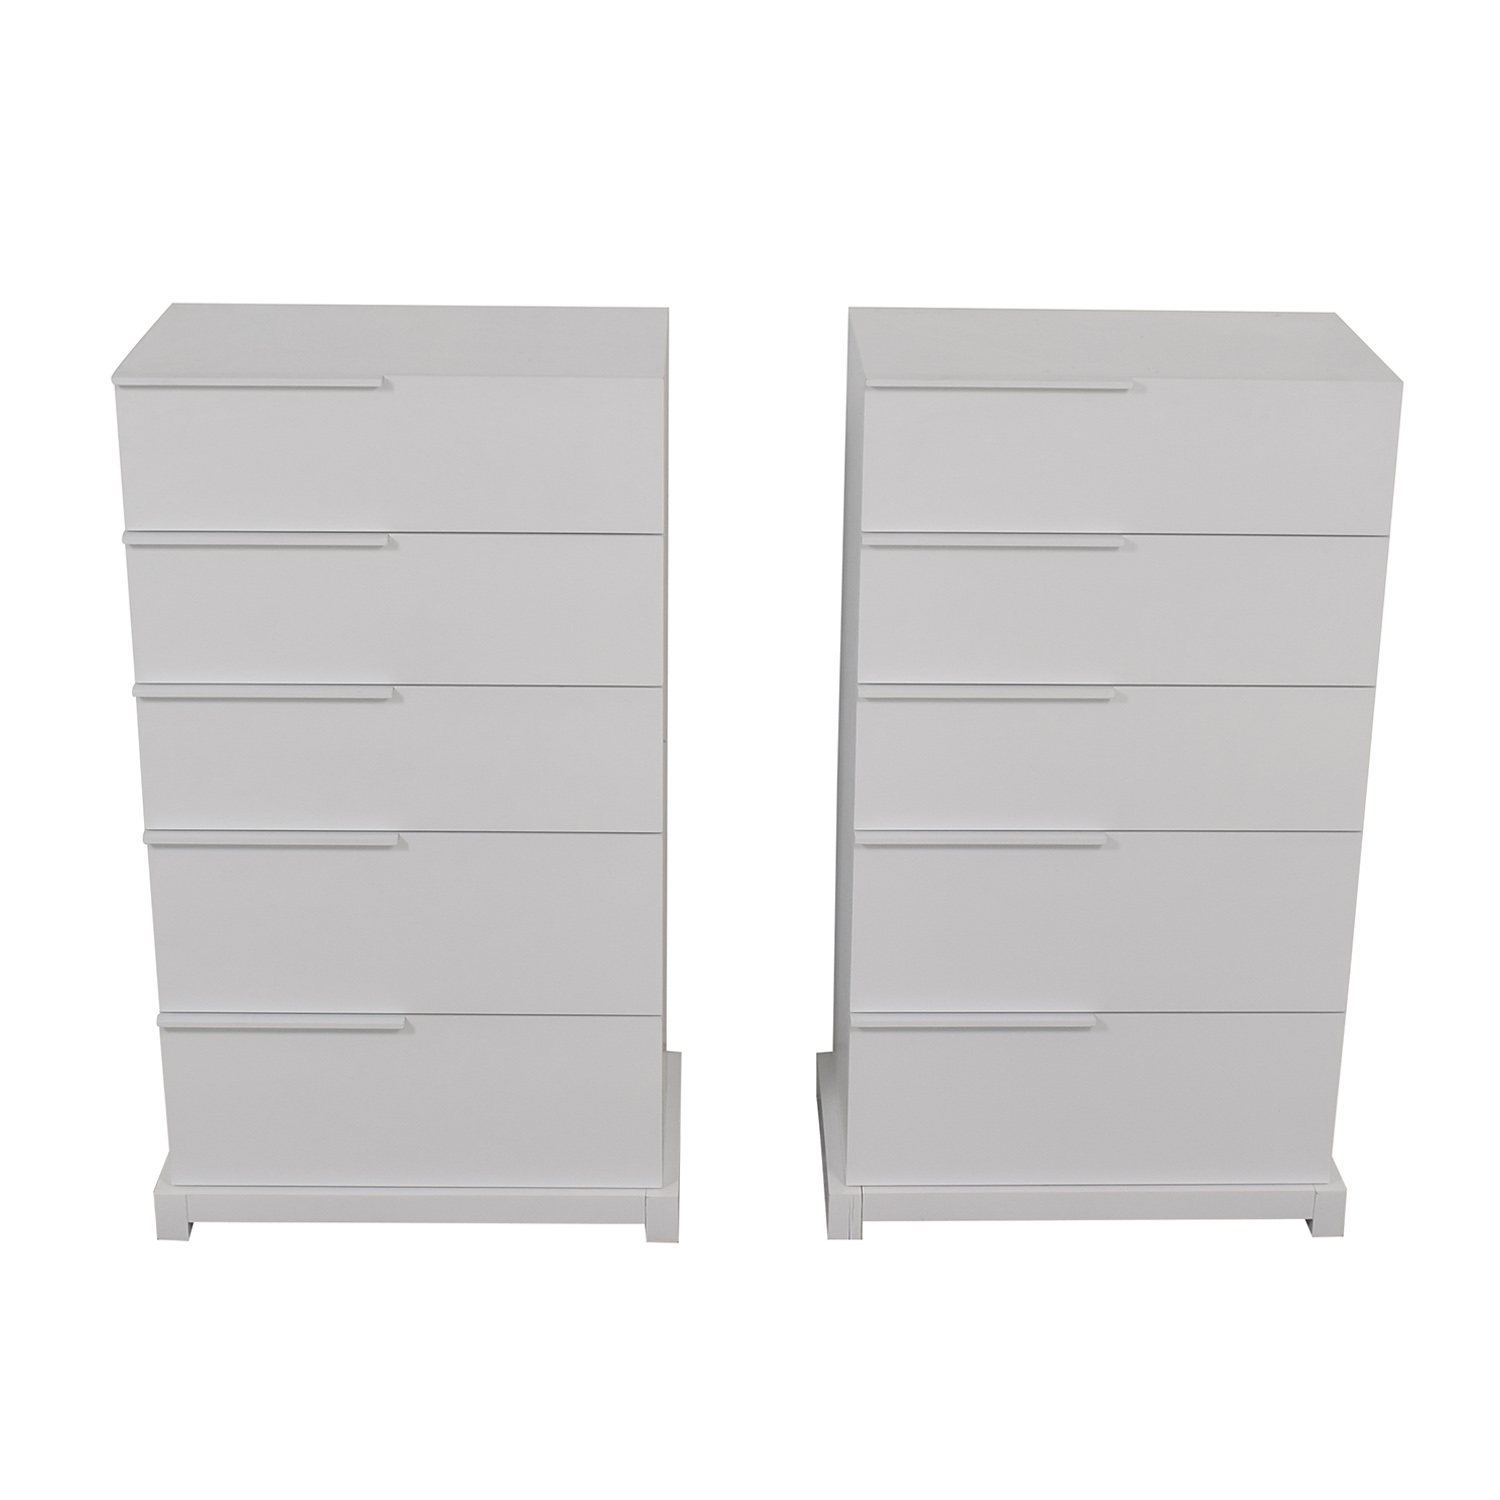 Huppe Huppe White Five-Drawer Dressers second hand